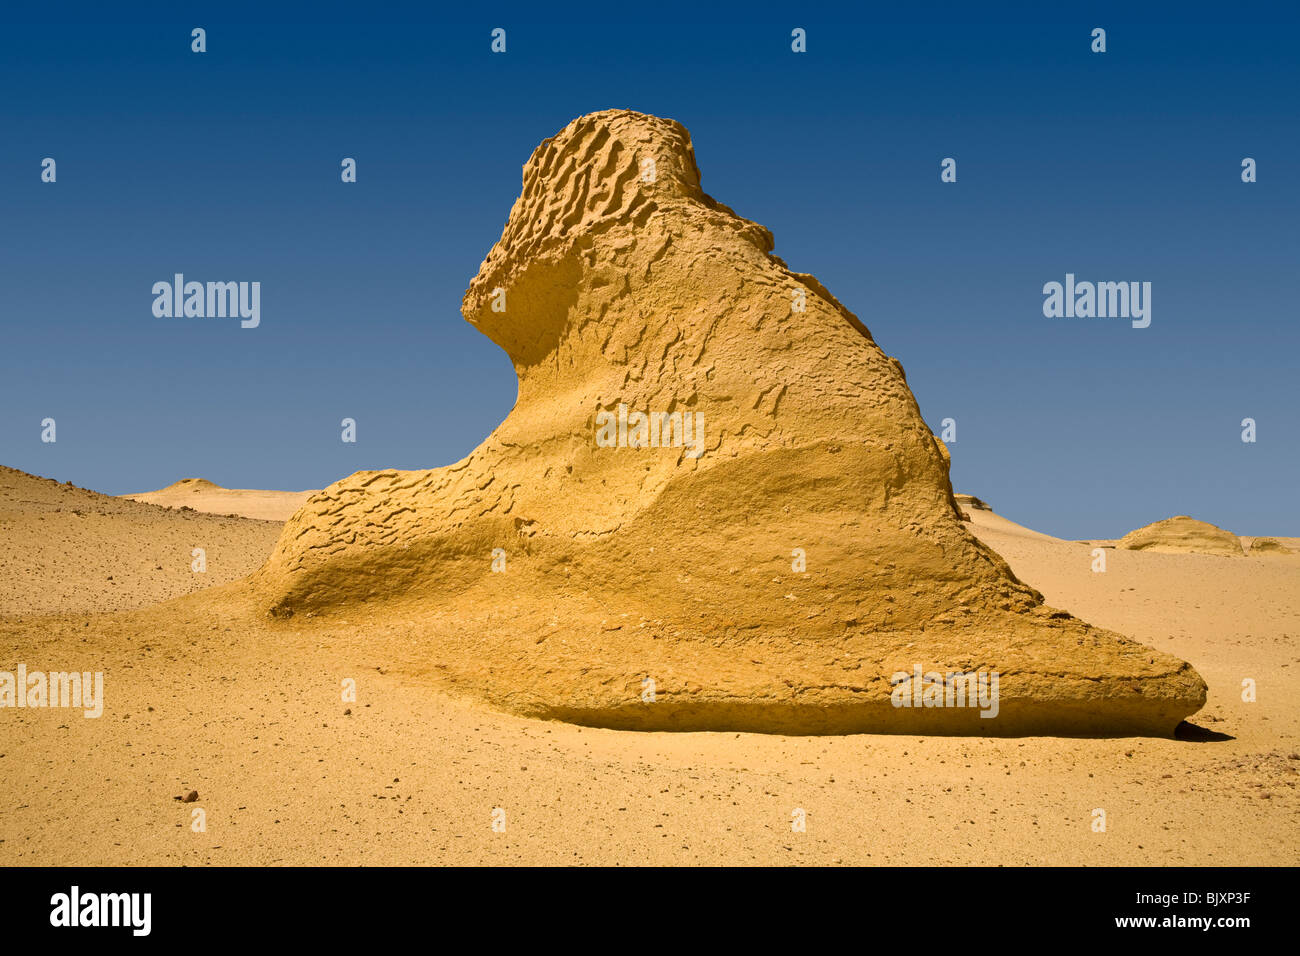 Shot of landscape  showing wind erosion in the Valley of The Whales, Wadi El-Hitan, Western Desert of Egypt - Stock Image